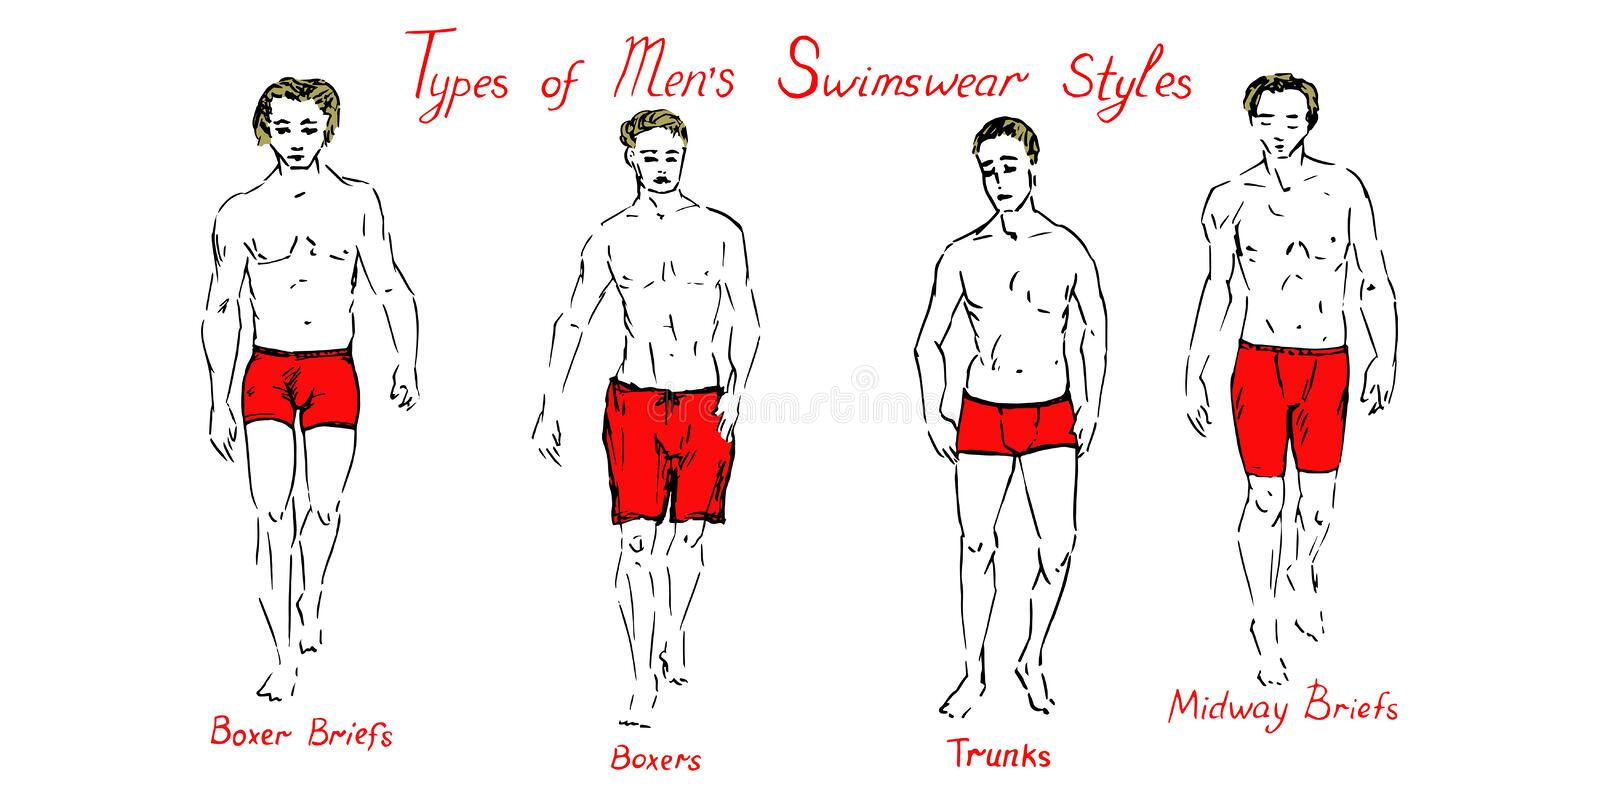 Portrait of sexy blonde guys in red boxer briefs, boxers, trunks and midway briefs shorts collection with inscription stock illustration